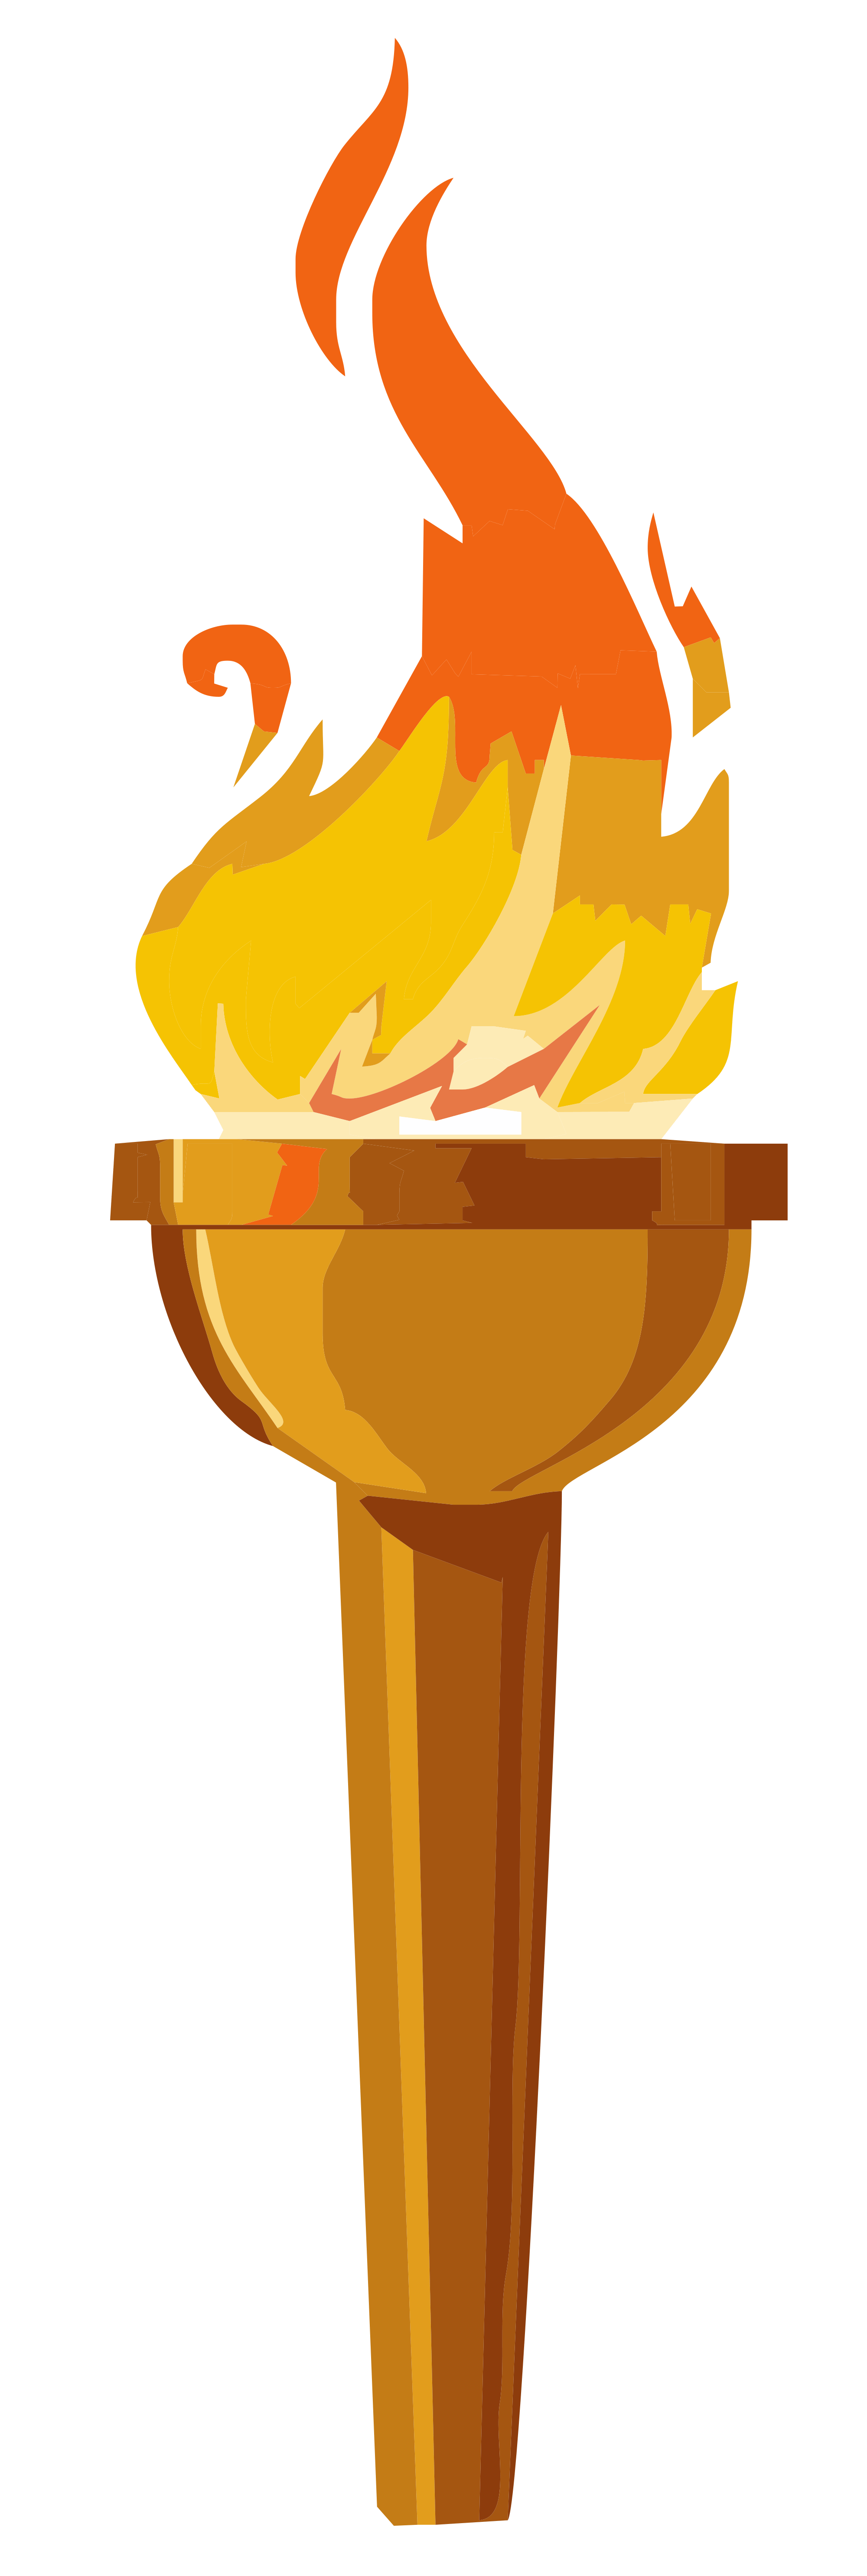 Torch clipart education. Olympic png